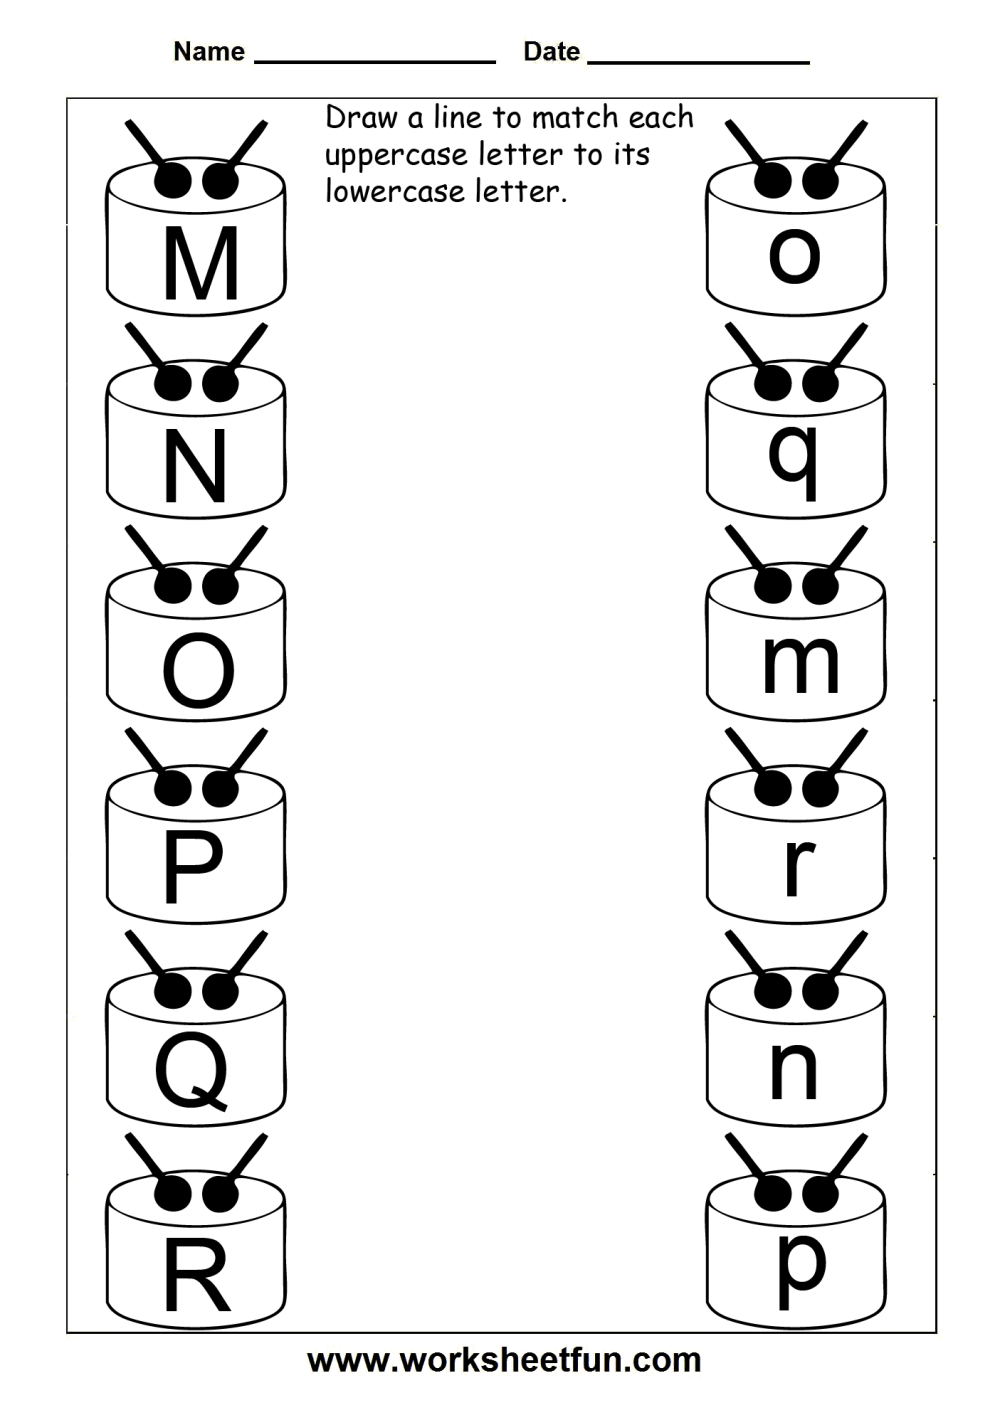 medium resolution of Match Uppercase And Lowercase Letters – 13 Worksheets / FREE Printable  Worksheets – Worksheetfun